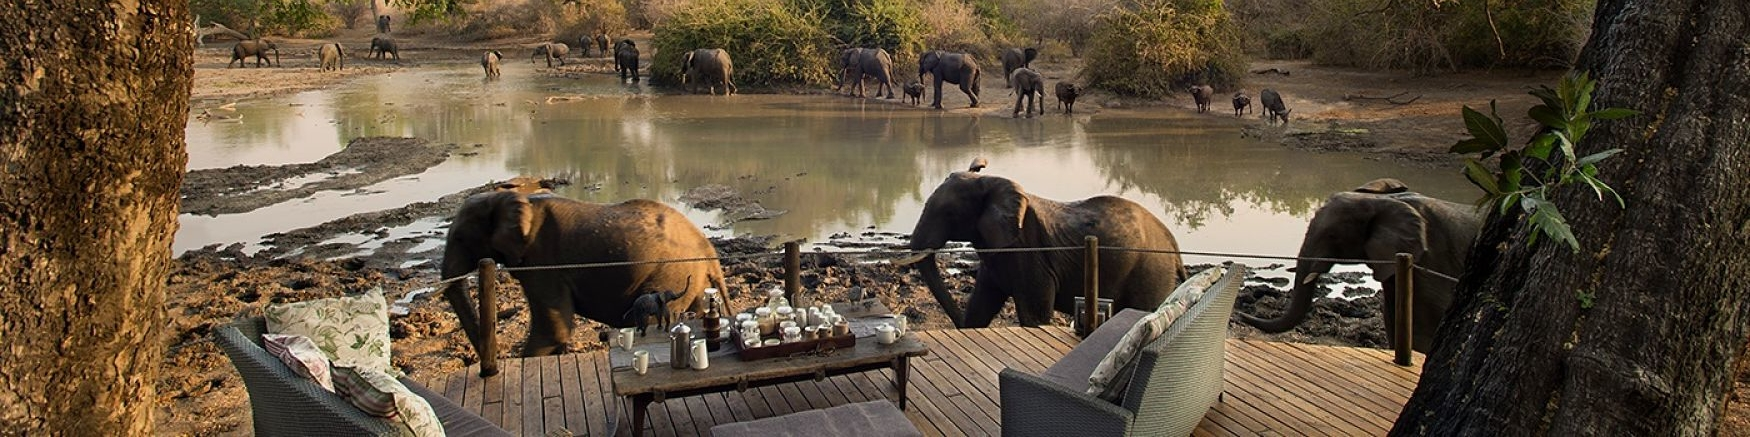 Mana Pools Kanga Camp - Zimbabwe